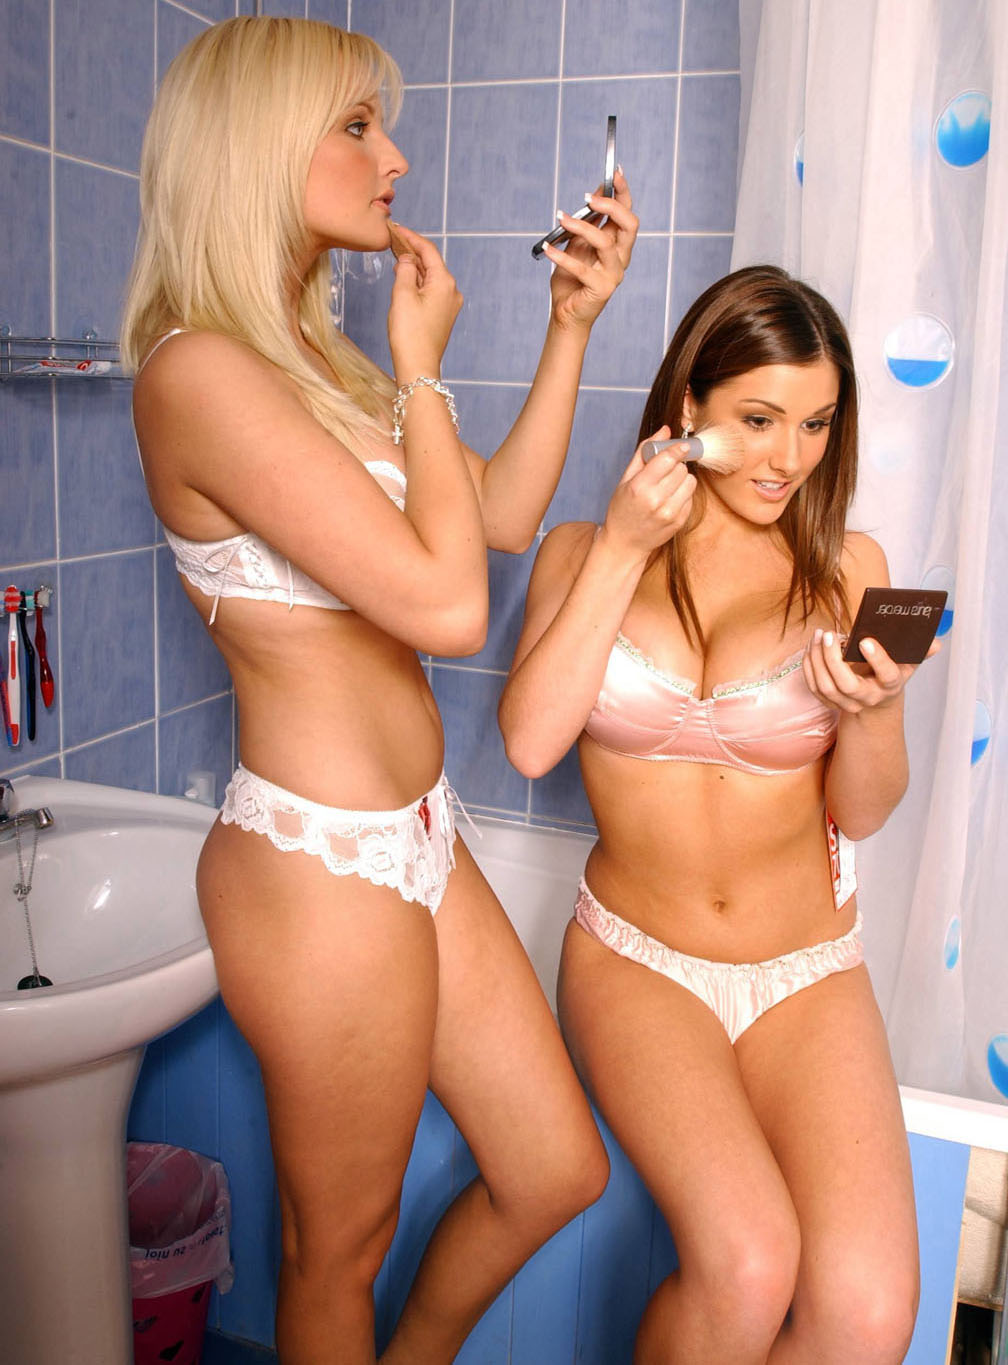 Hot lucy pinder michelle marsh nude